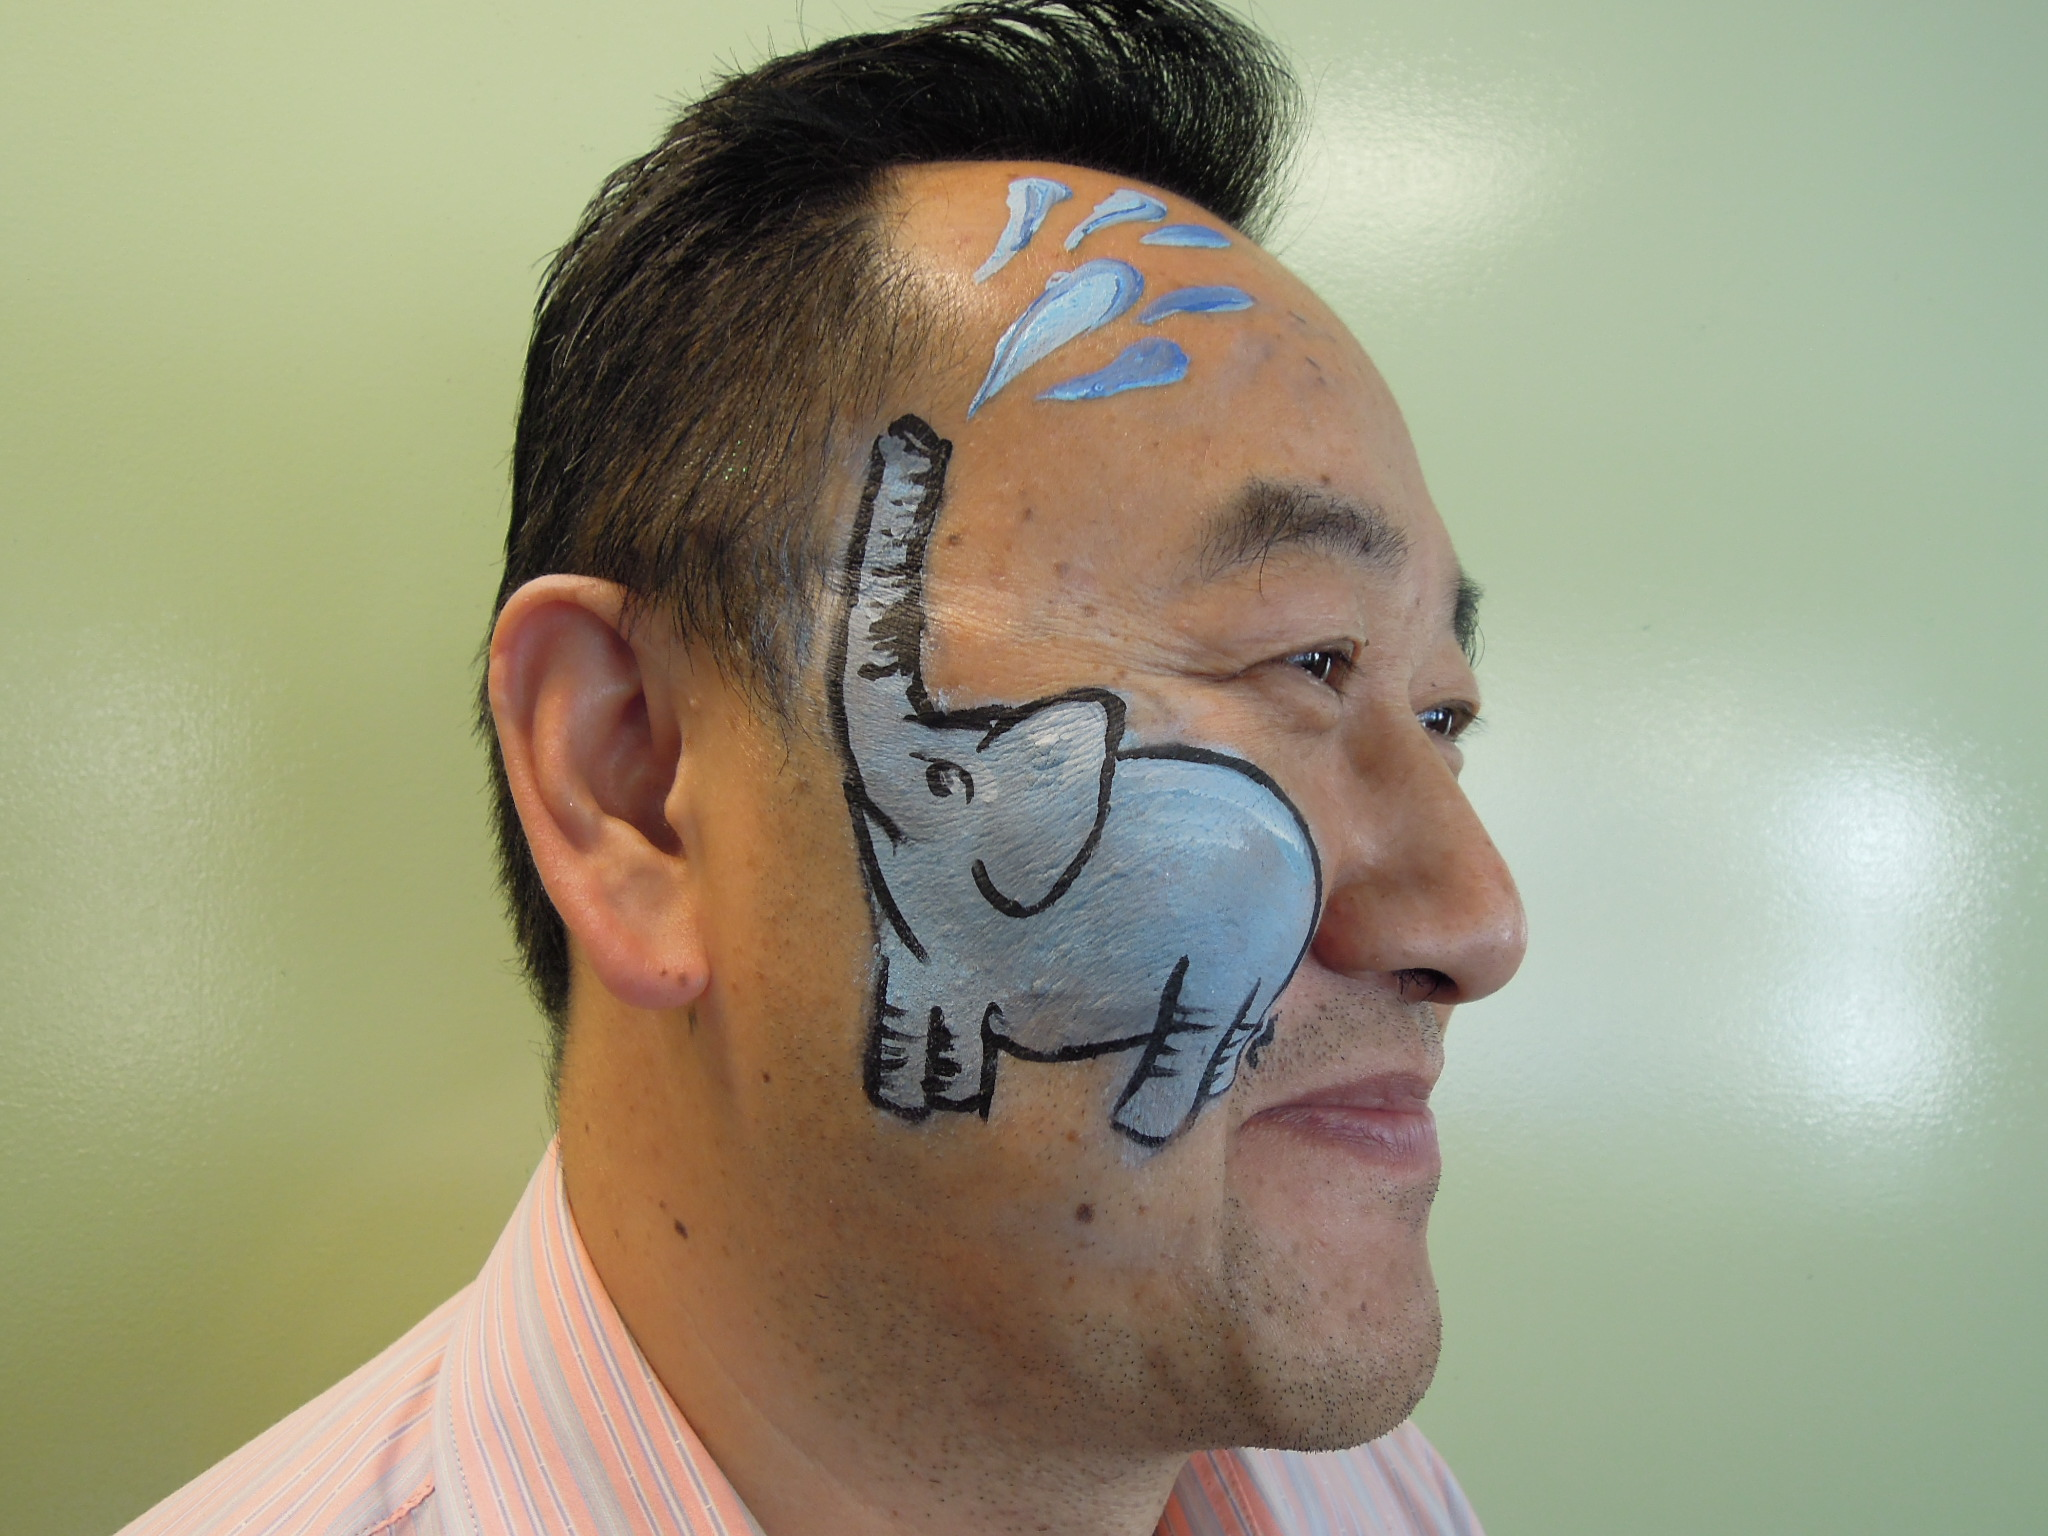 elephant-cheek-face-paint-man.JPG